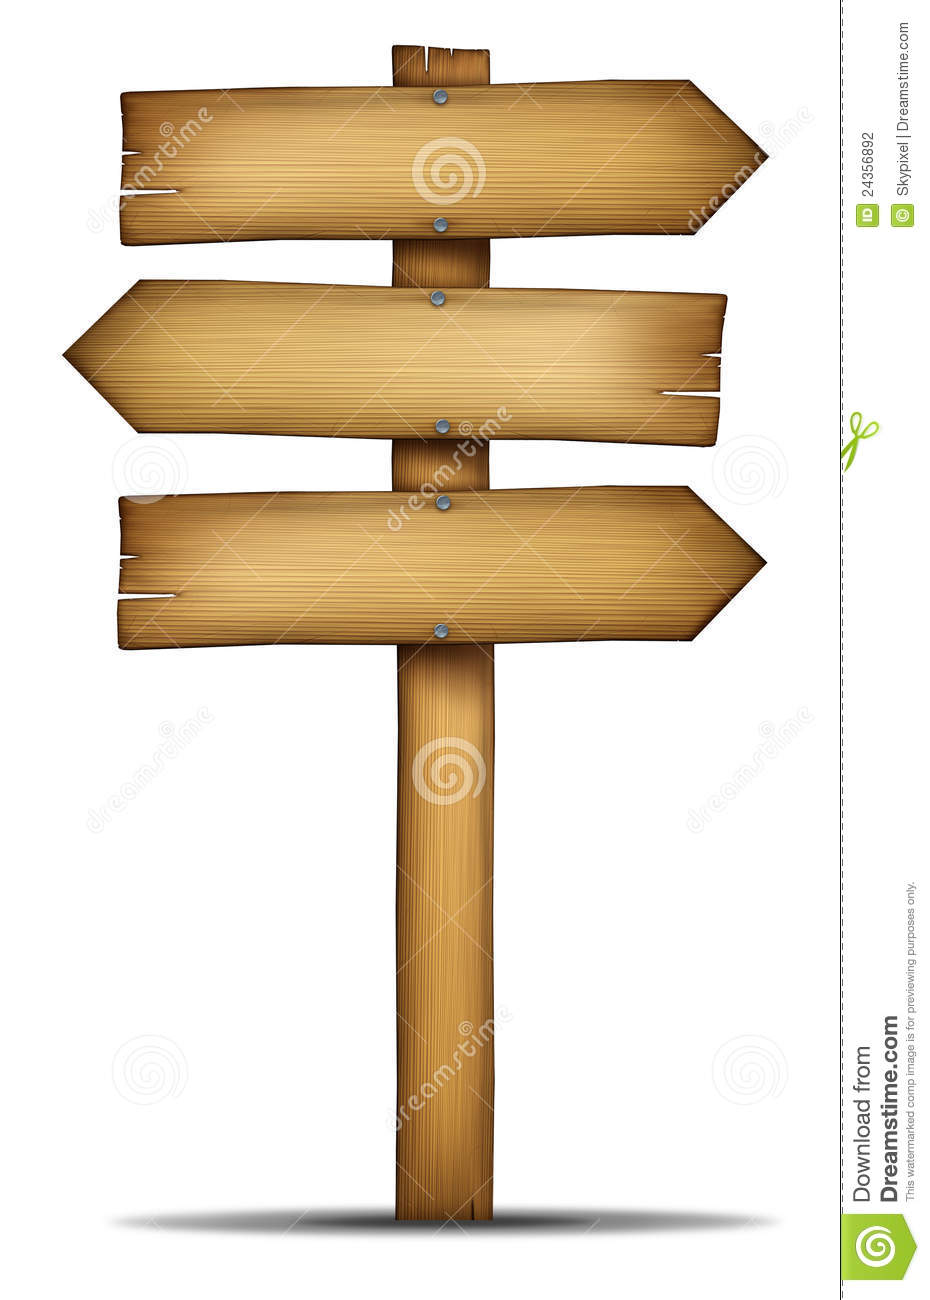 Wooden Directions Arrow Signs Stock Illustration Image